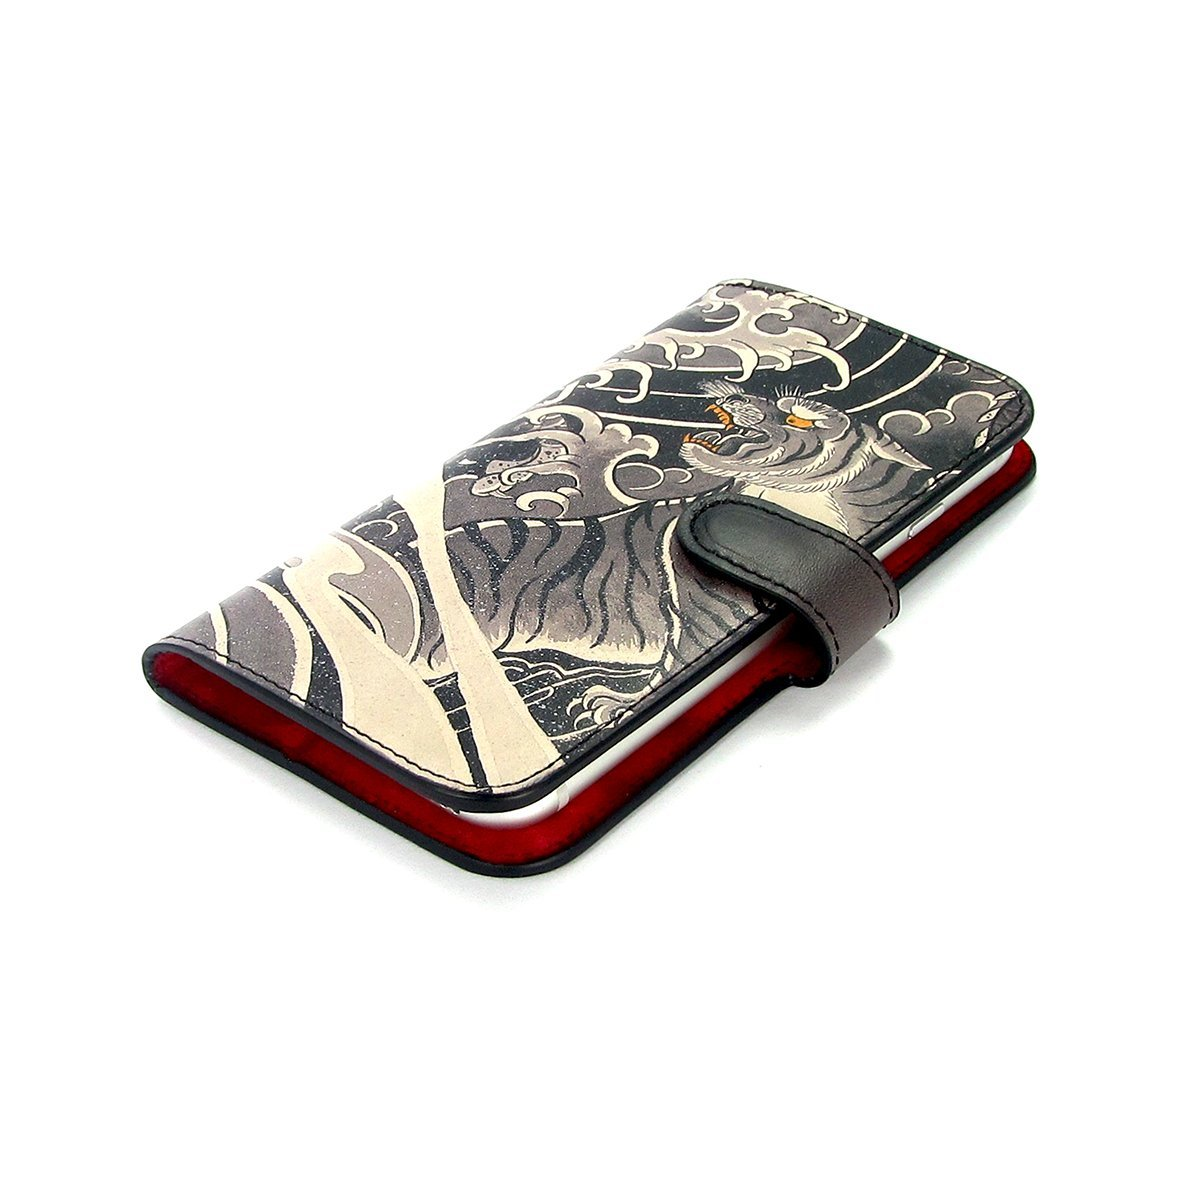 Leather Wallet Phone Case - Tiger and Dragon Tattoo Phone case Tovi Sorga iPhone XR No personalisation Black